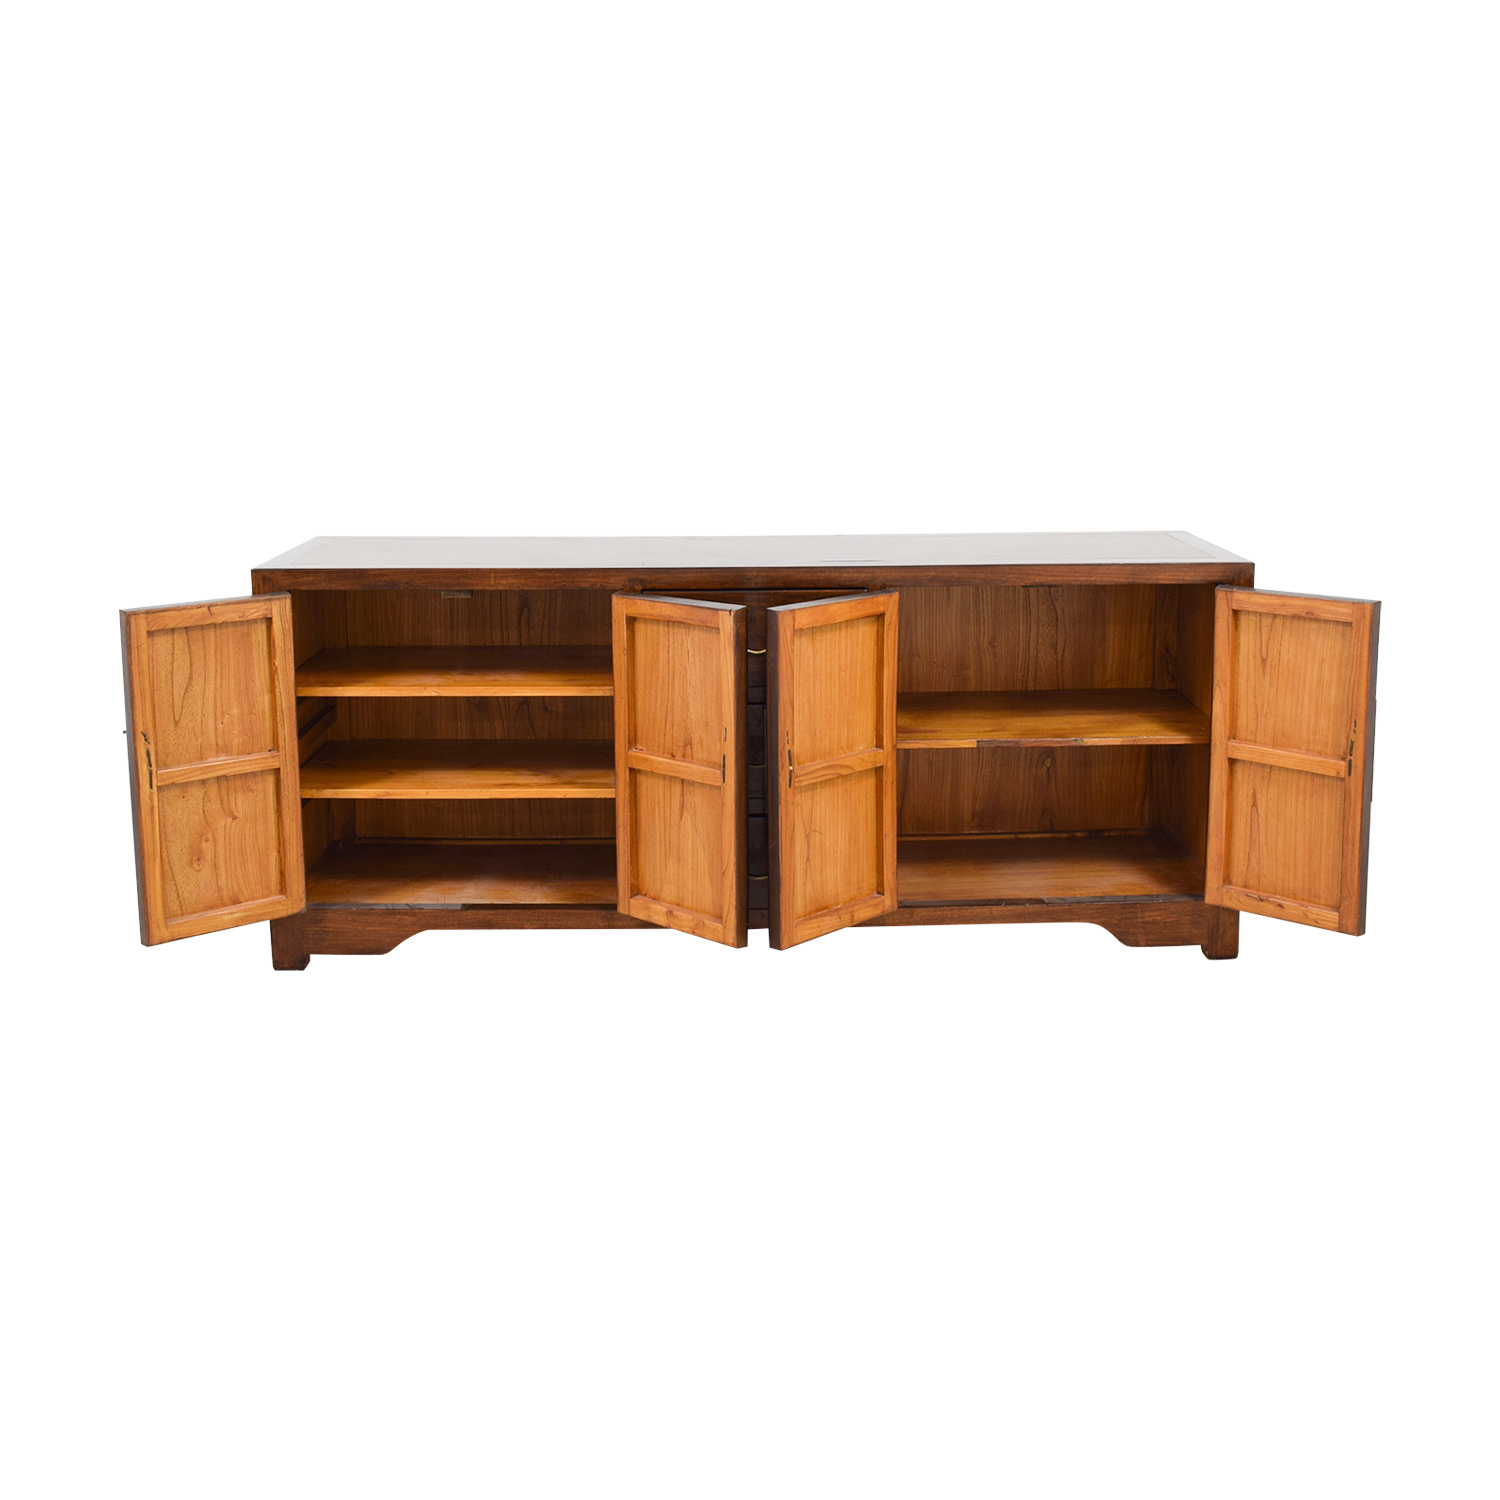 ABC Carpet and Home ABC Carpet and Home Asian-Inspired Wood Credenza Cabinets & Sideboards